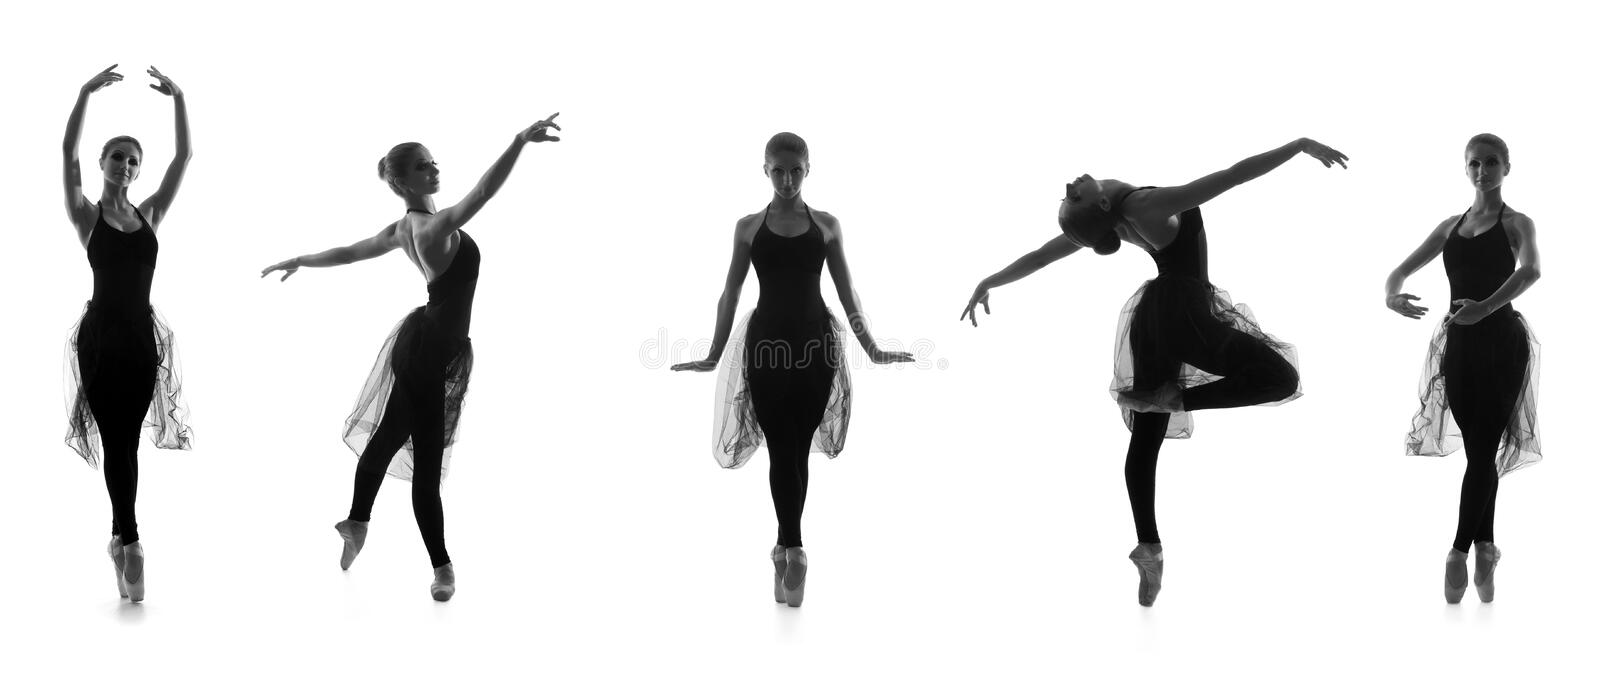 Young Caucasian ballet dancers in black dresses royalty free stock images